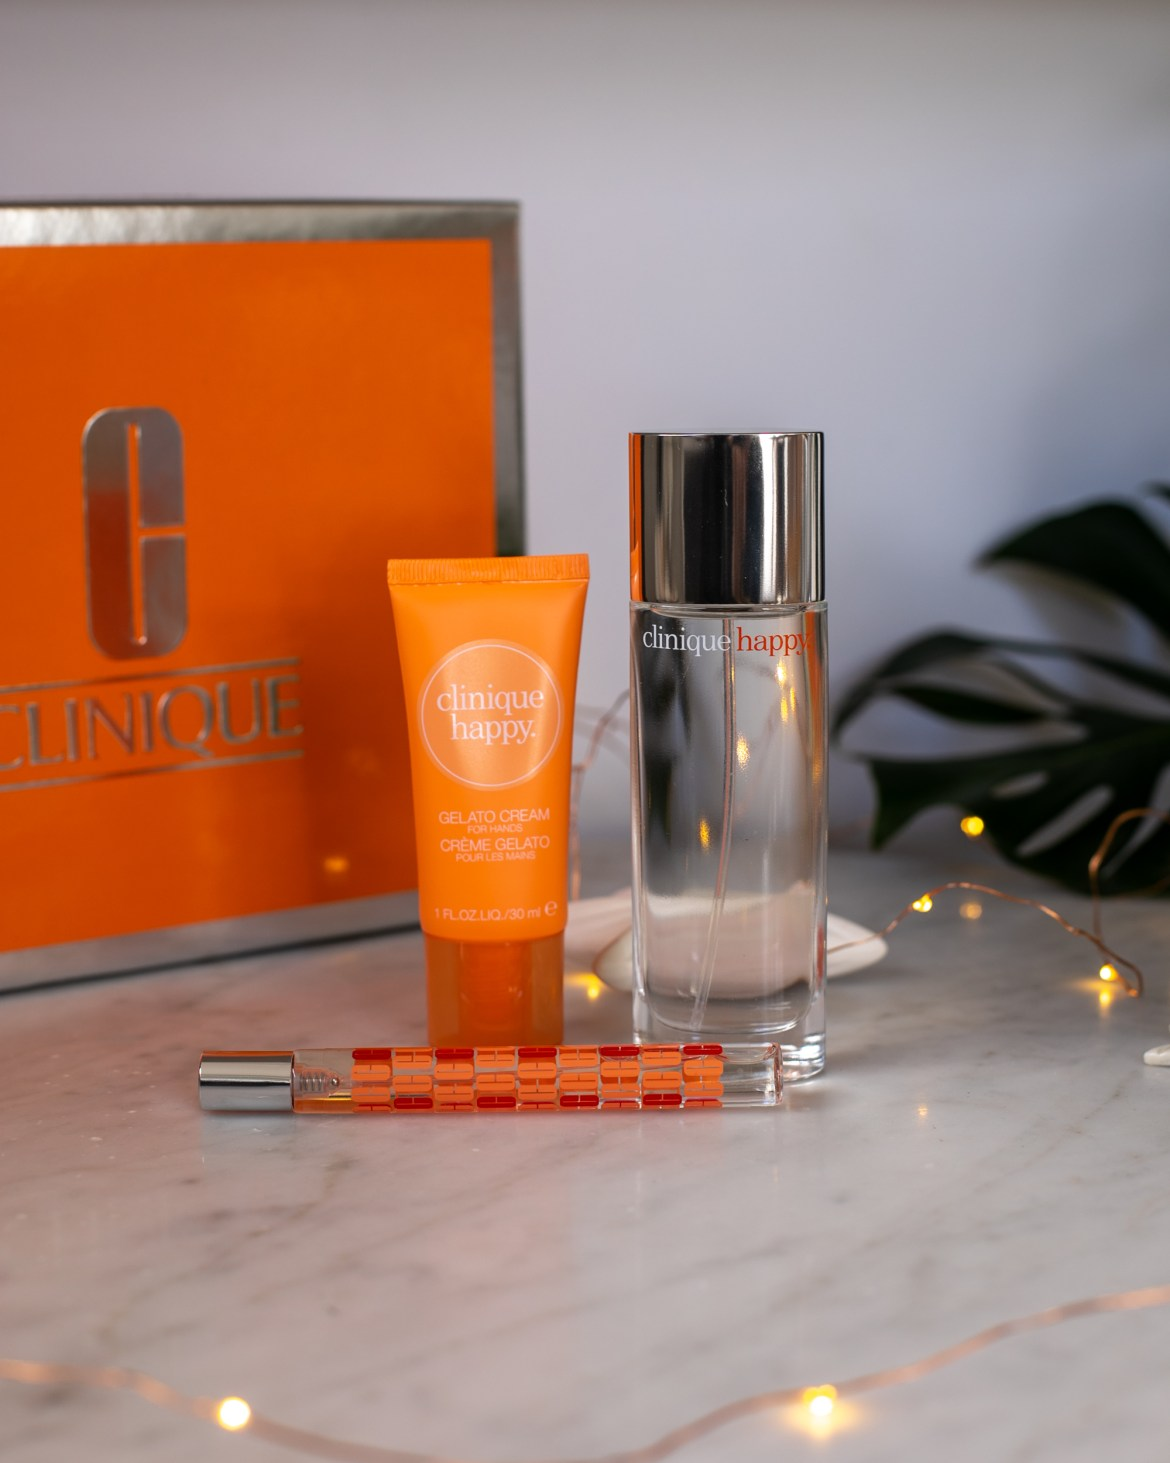 Clinique Happy gift set 2020 the iconic fragrance makes the perfect summer scent and gift for Christmas.